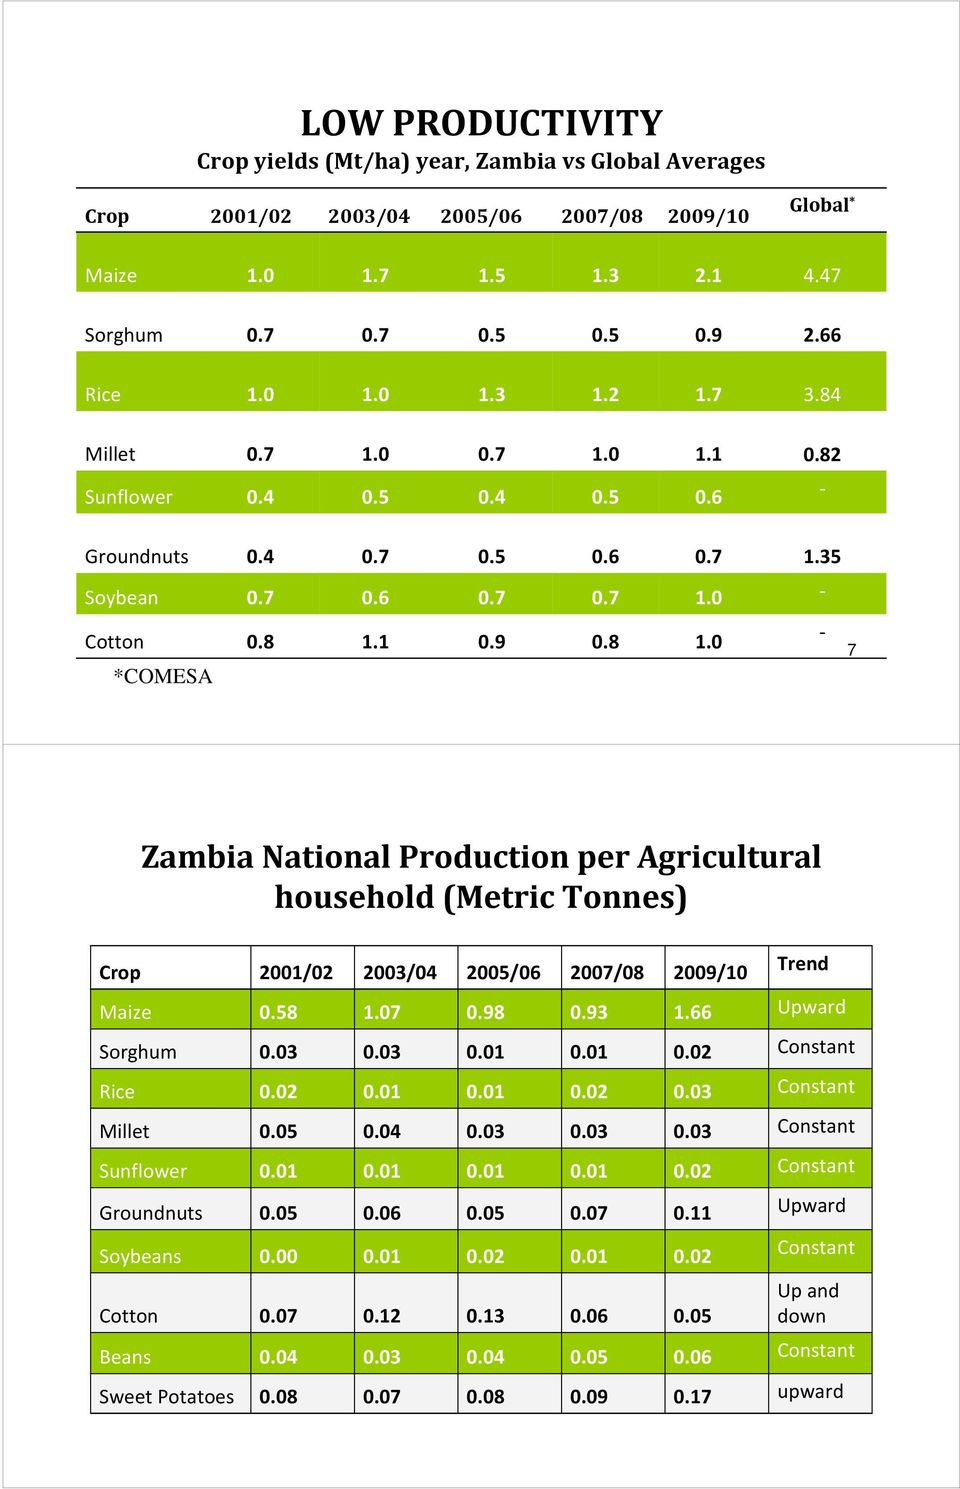 1 0.9 0.8 1.0 7 Zambia National Production per Agricultural household (Metric Tonnes) Crop 2001/02 2003/04 2005/06 2007/08 2009/10 Trend Maize 0.58 1.07 0.98 0.93 1.66 Upward Sorghum 0.03 0.